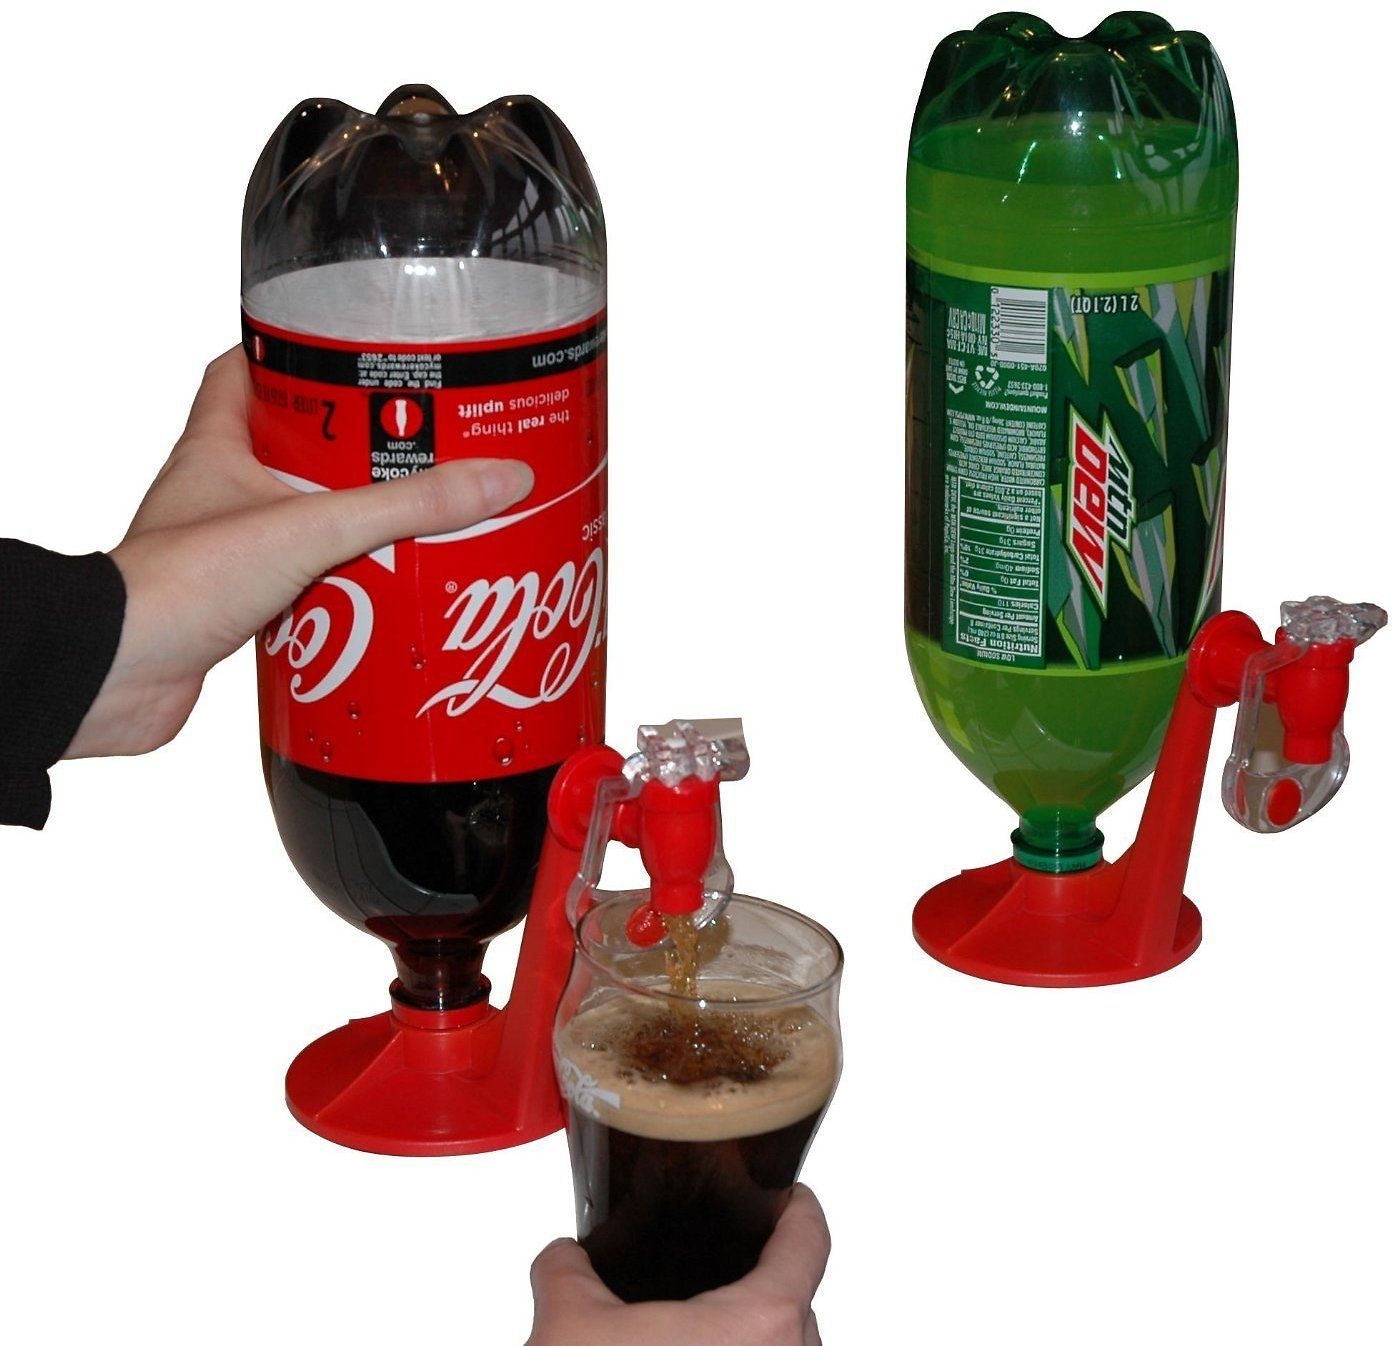 Fizz Saver 2 Liter Soda Soft Drink Dispenser, Red